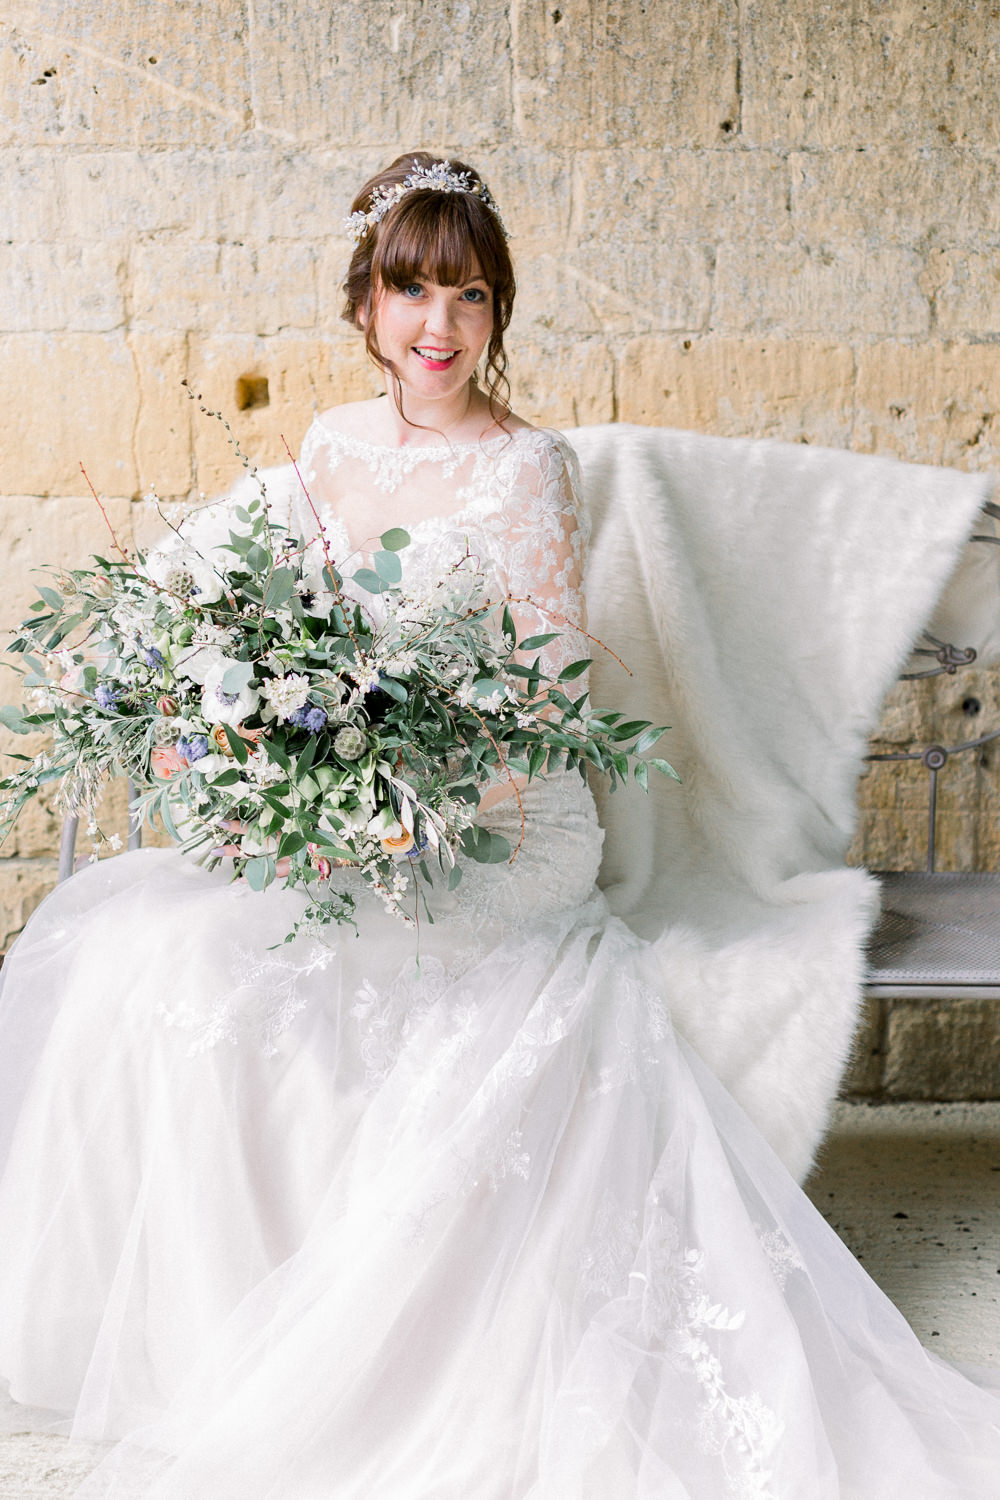 Dress Gown Bride Bridal Lace Sleeves Winter Blue Barn Wedding Ideas Joanna Briggs Photography